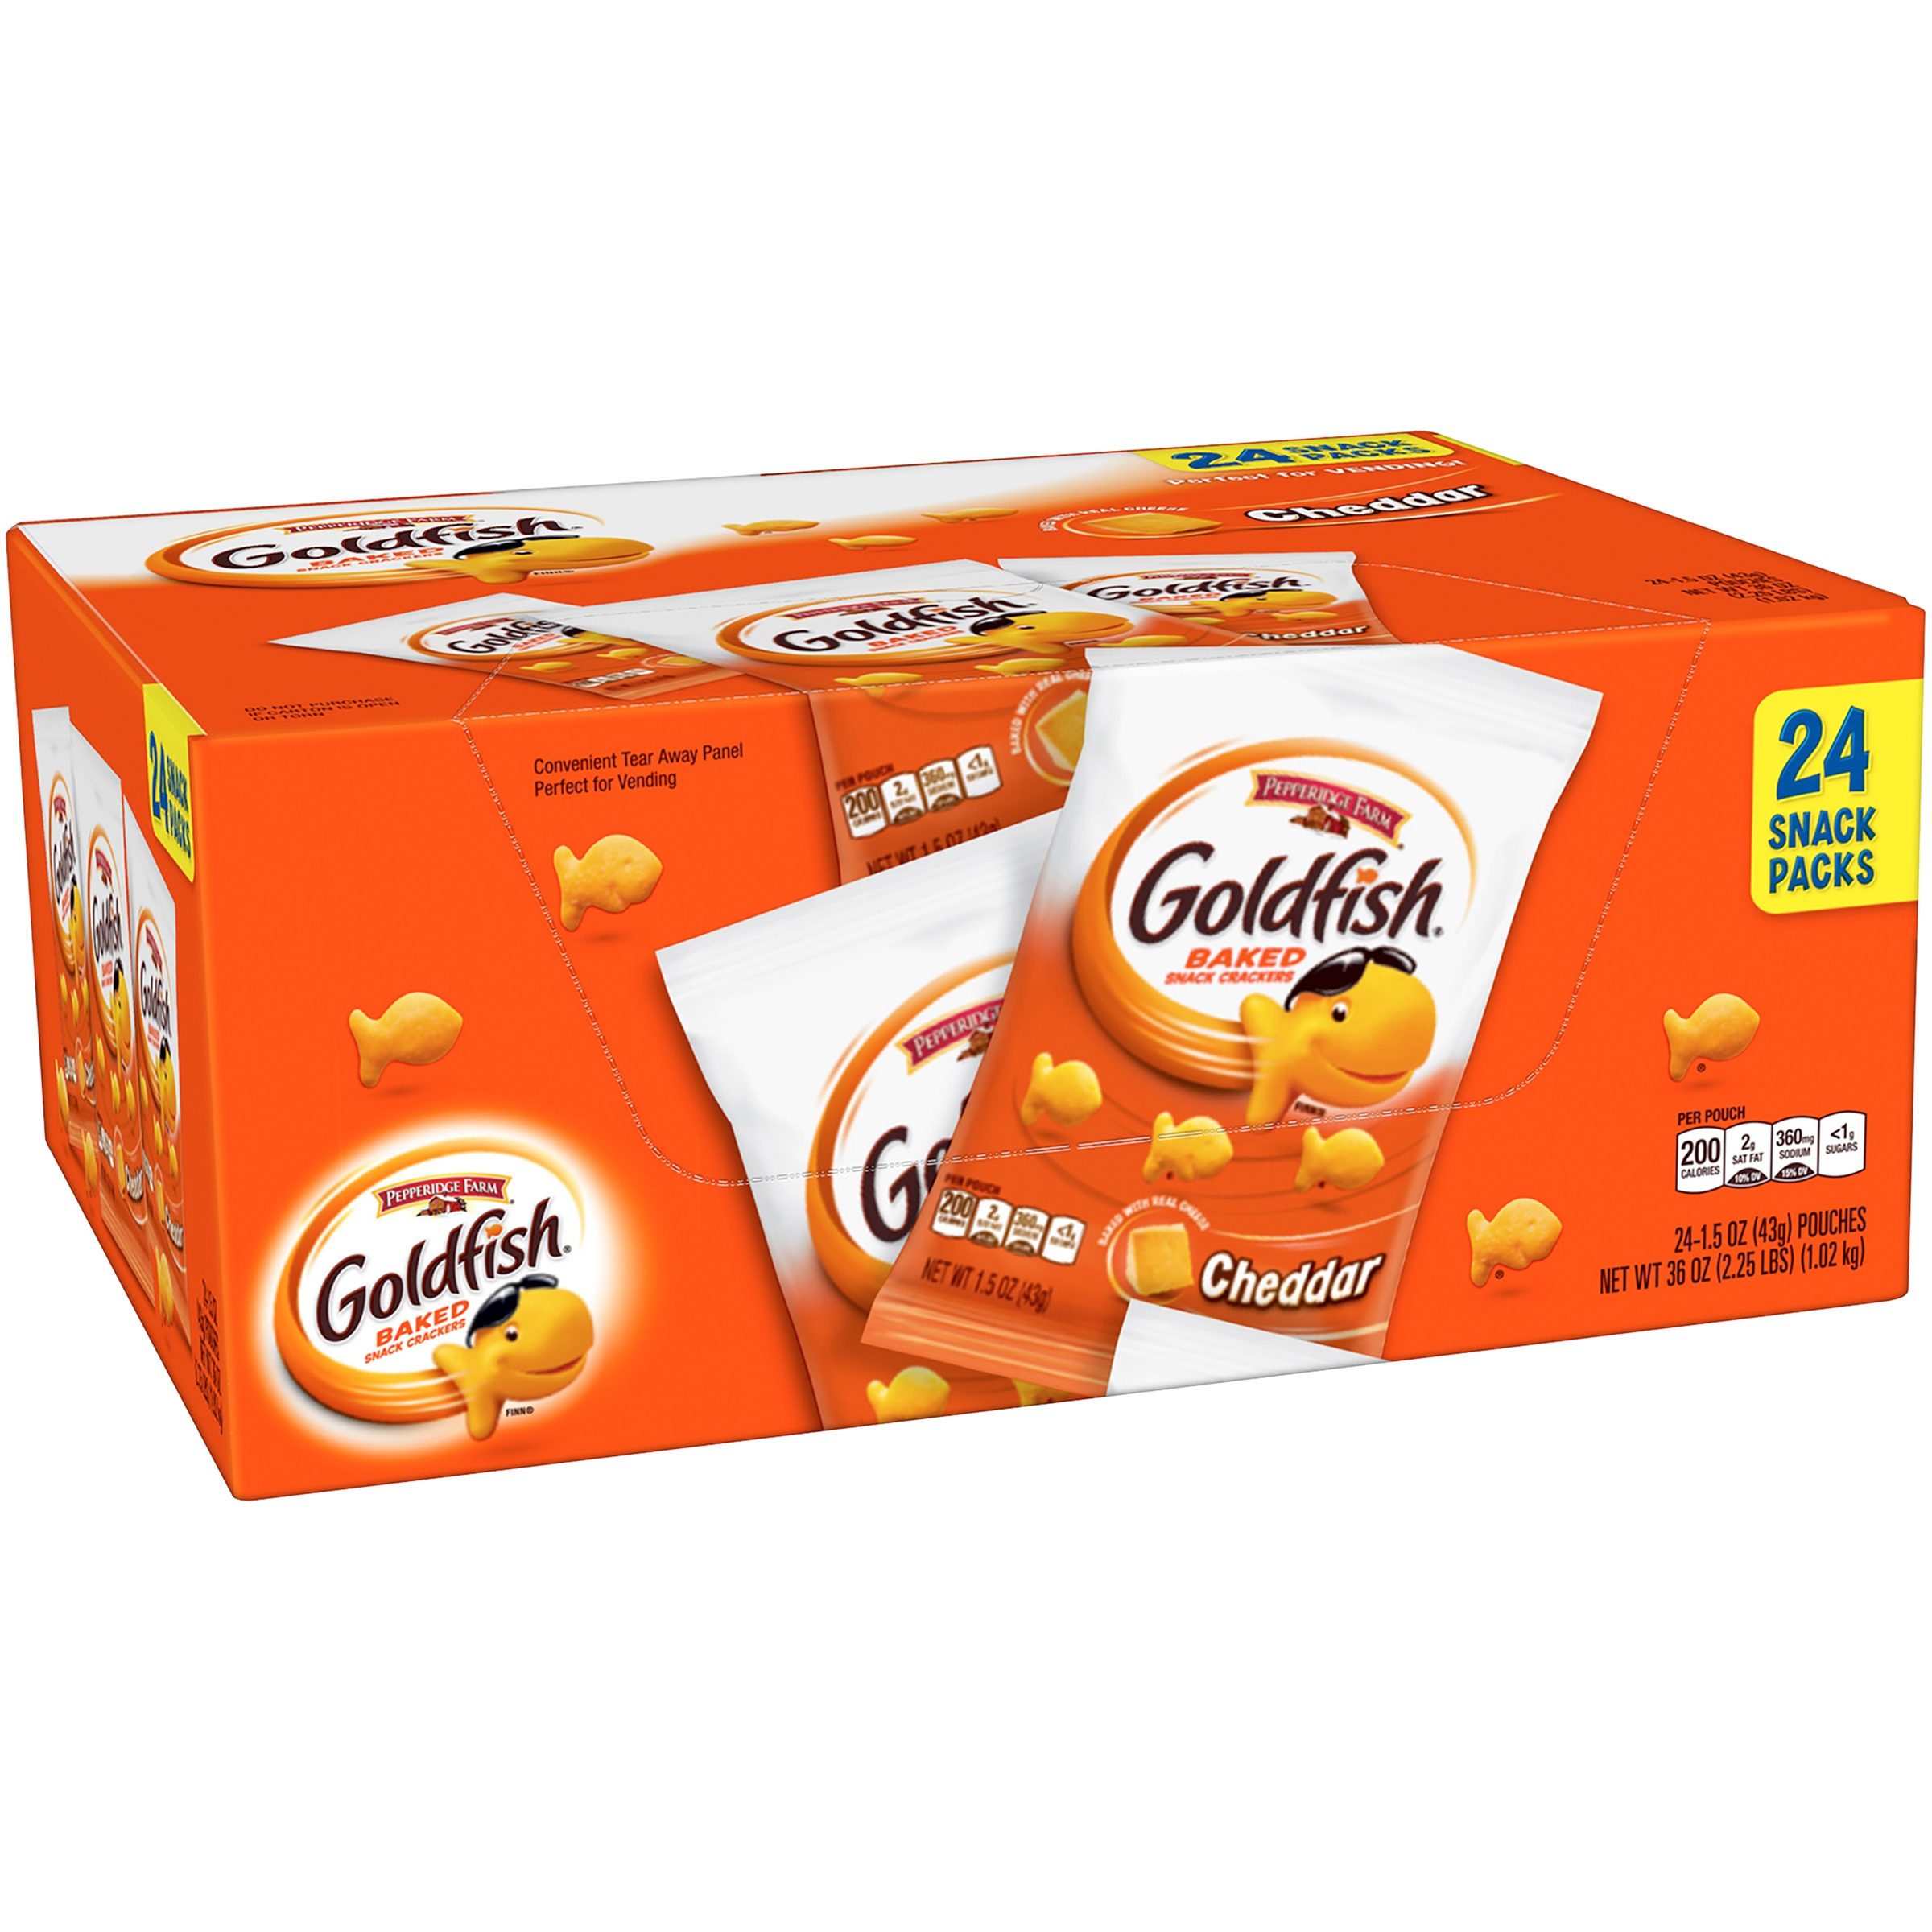 Pepperidge Farm® Goldfish® Cheddar Baked Snack Crackers 24-1.5 oz. Pouches